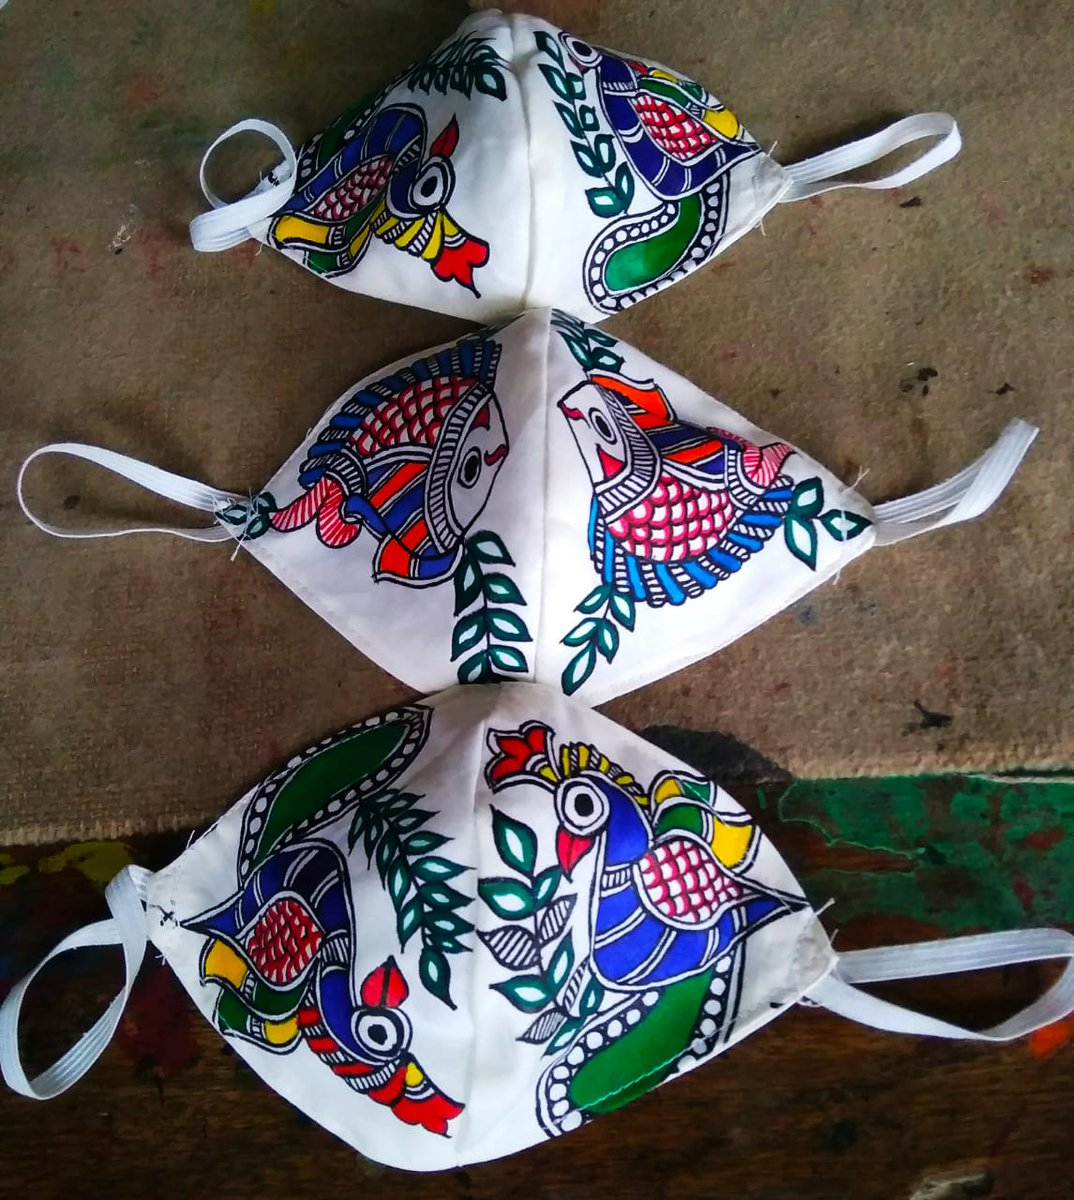 A poor Madhubani painter in Bihar ....He said that he can send by courier ....each three layered cotton mask costs ₹50/-. Pl spread the word around and help friends. He can be contacted at +91 9899429912